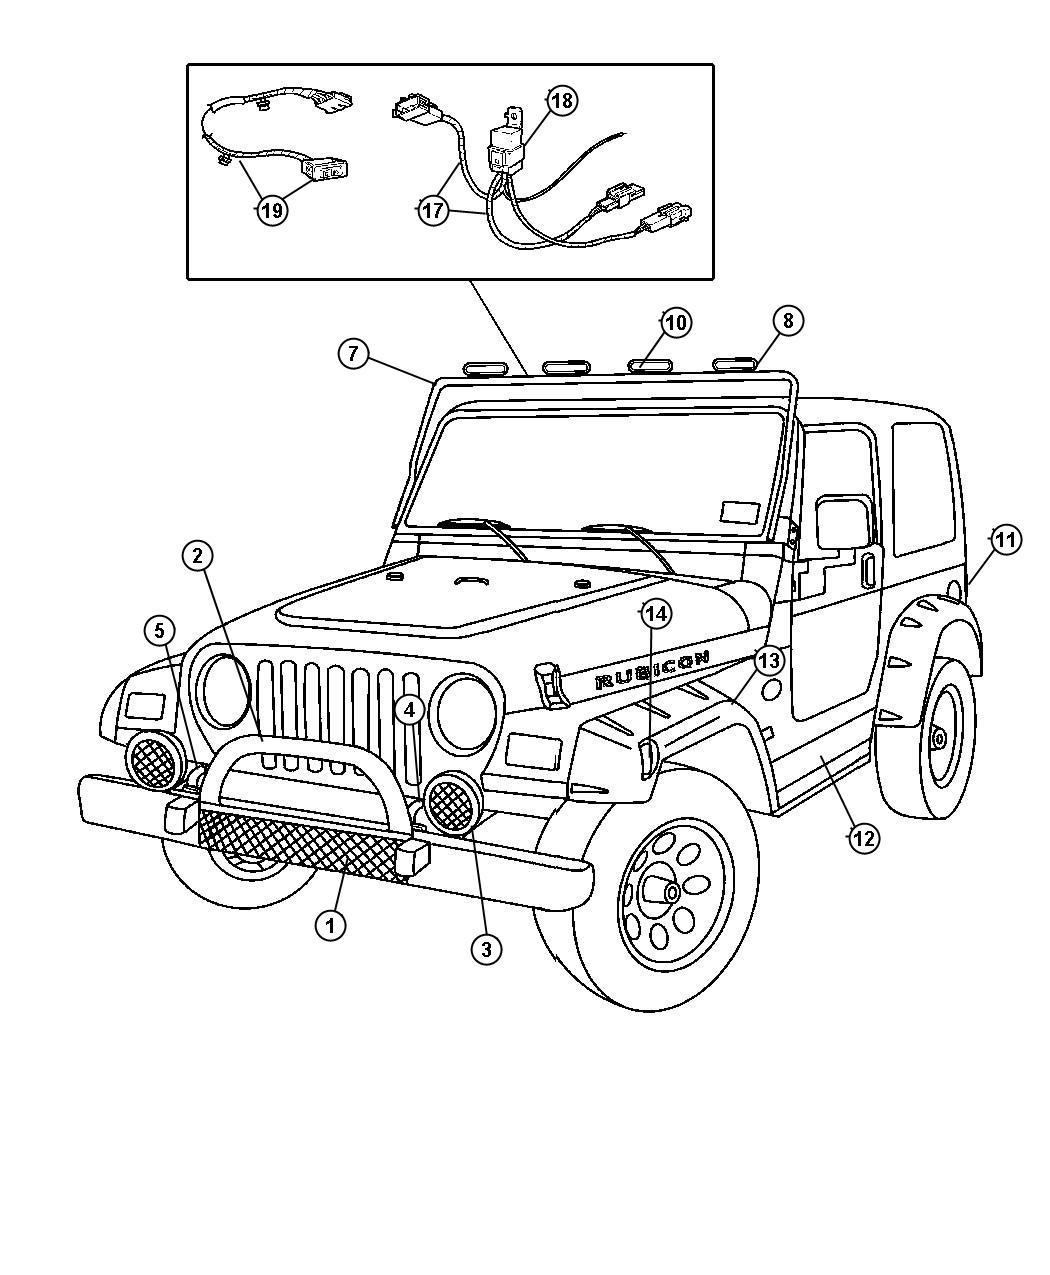 Wiring Harness For Jeep Wrangler